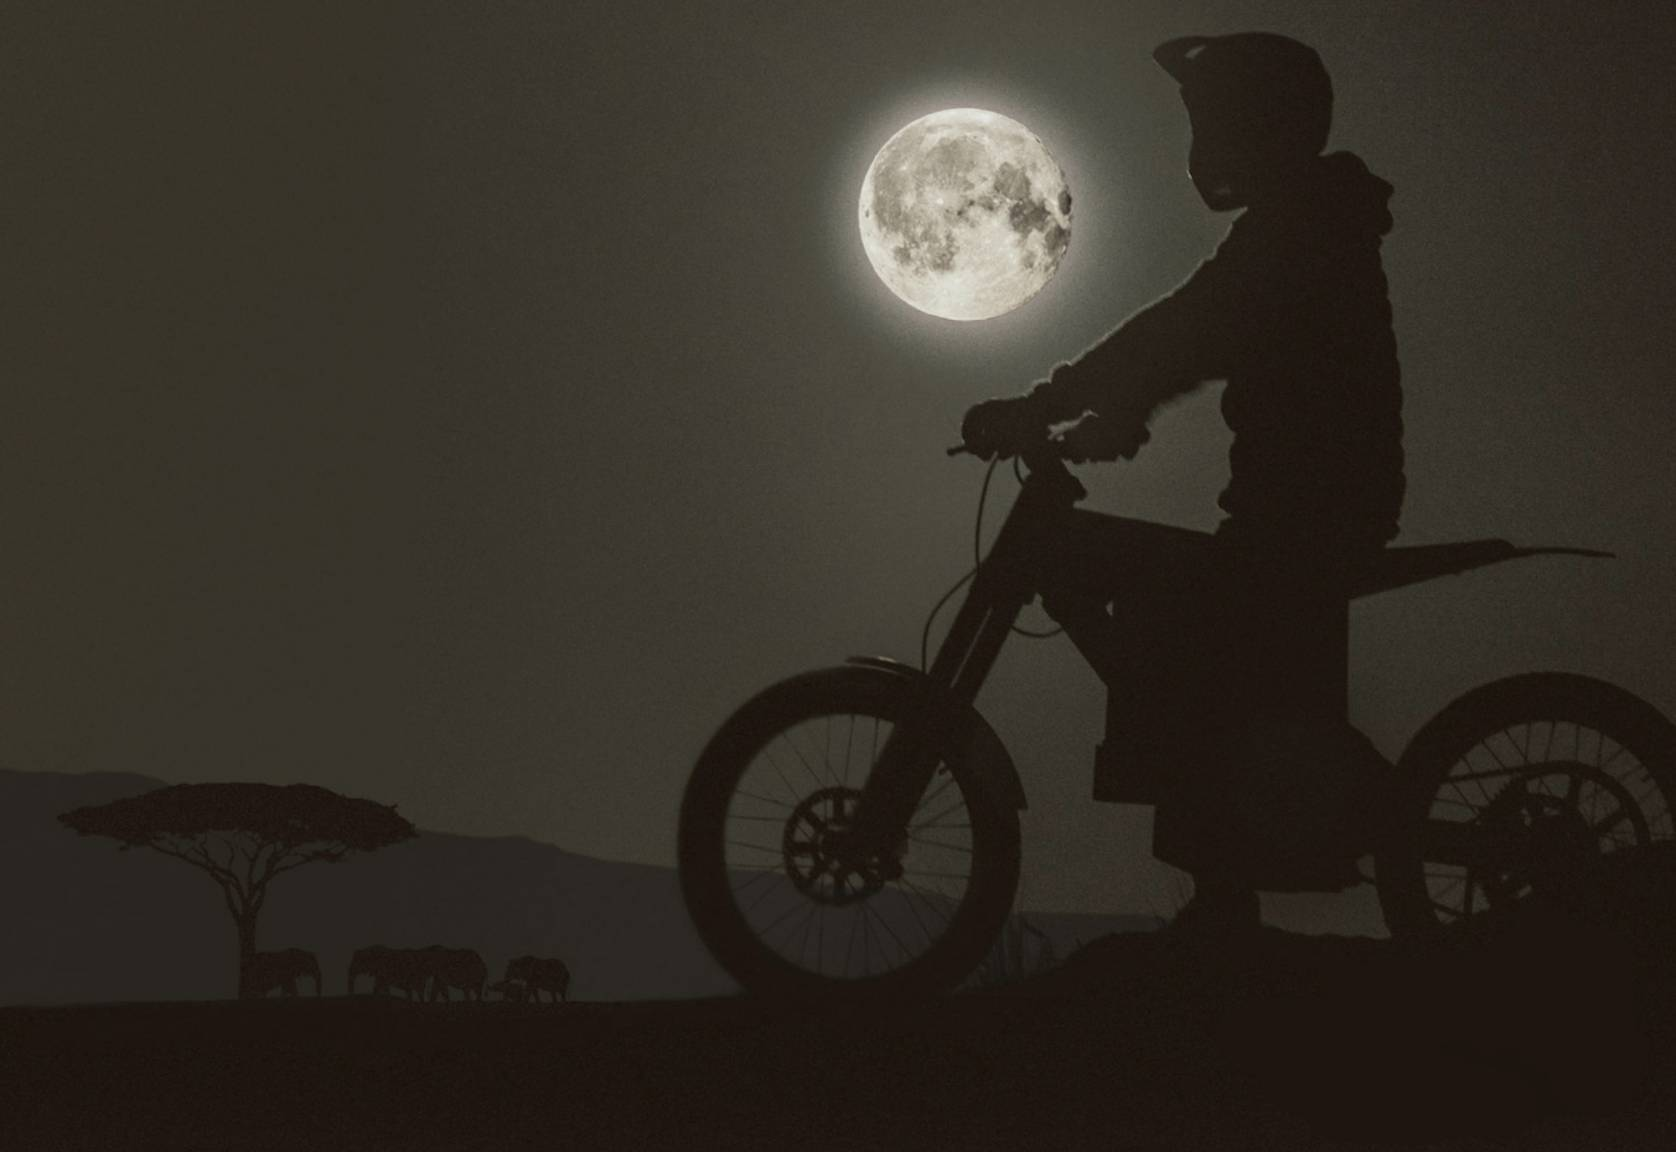 silhouette of rider in moto-helmet on a CAKE electric bush bike